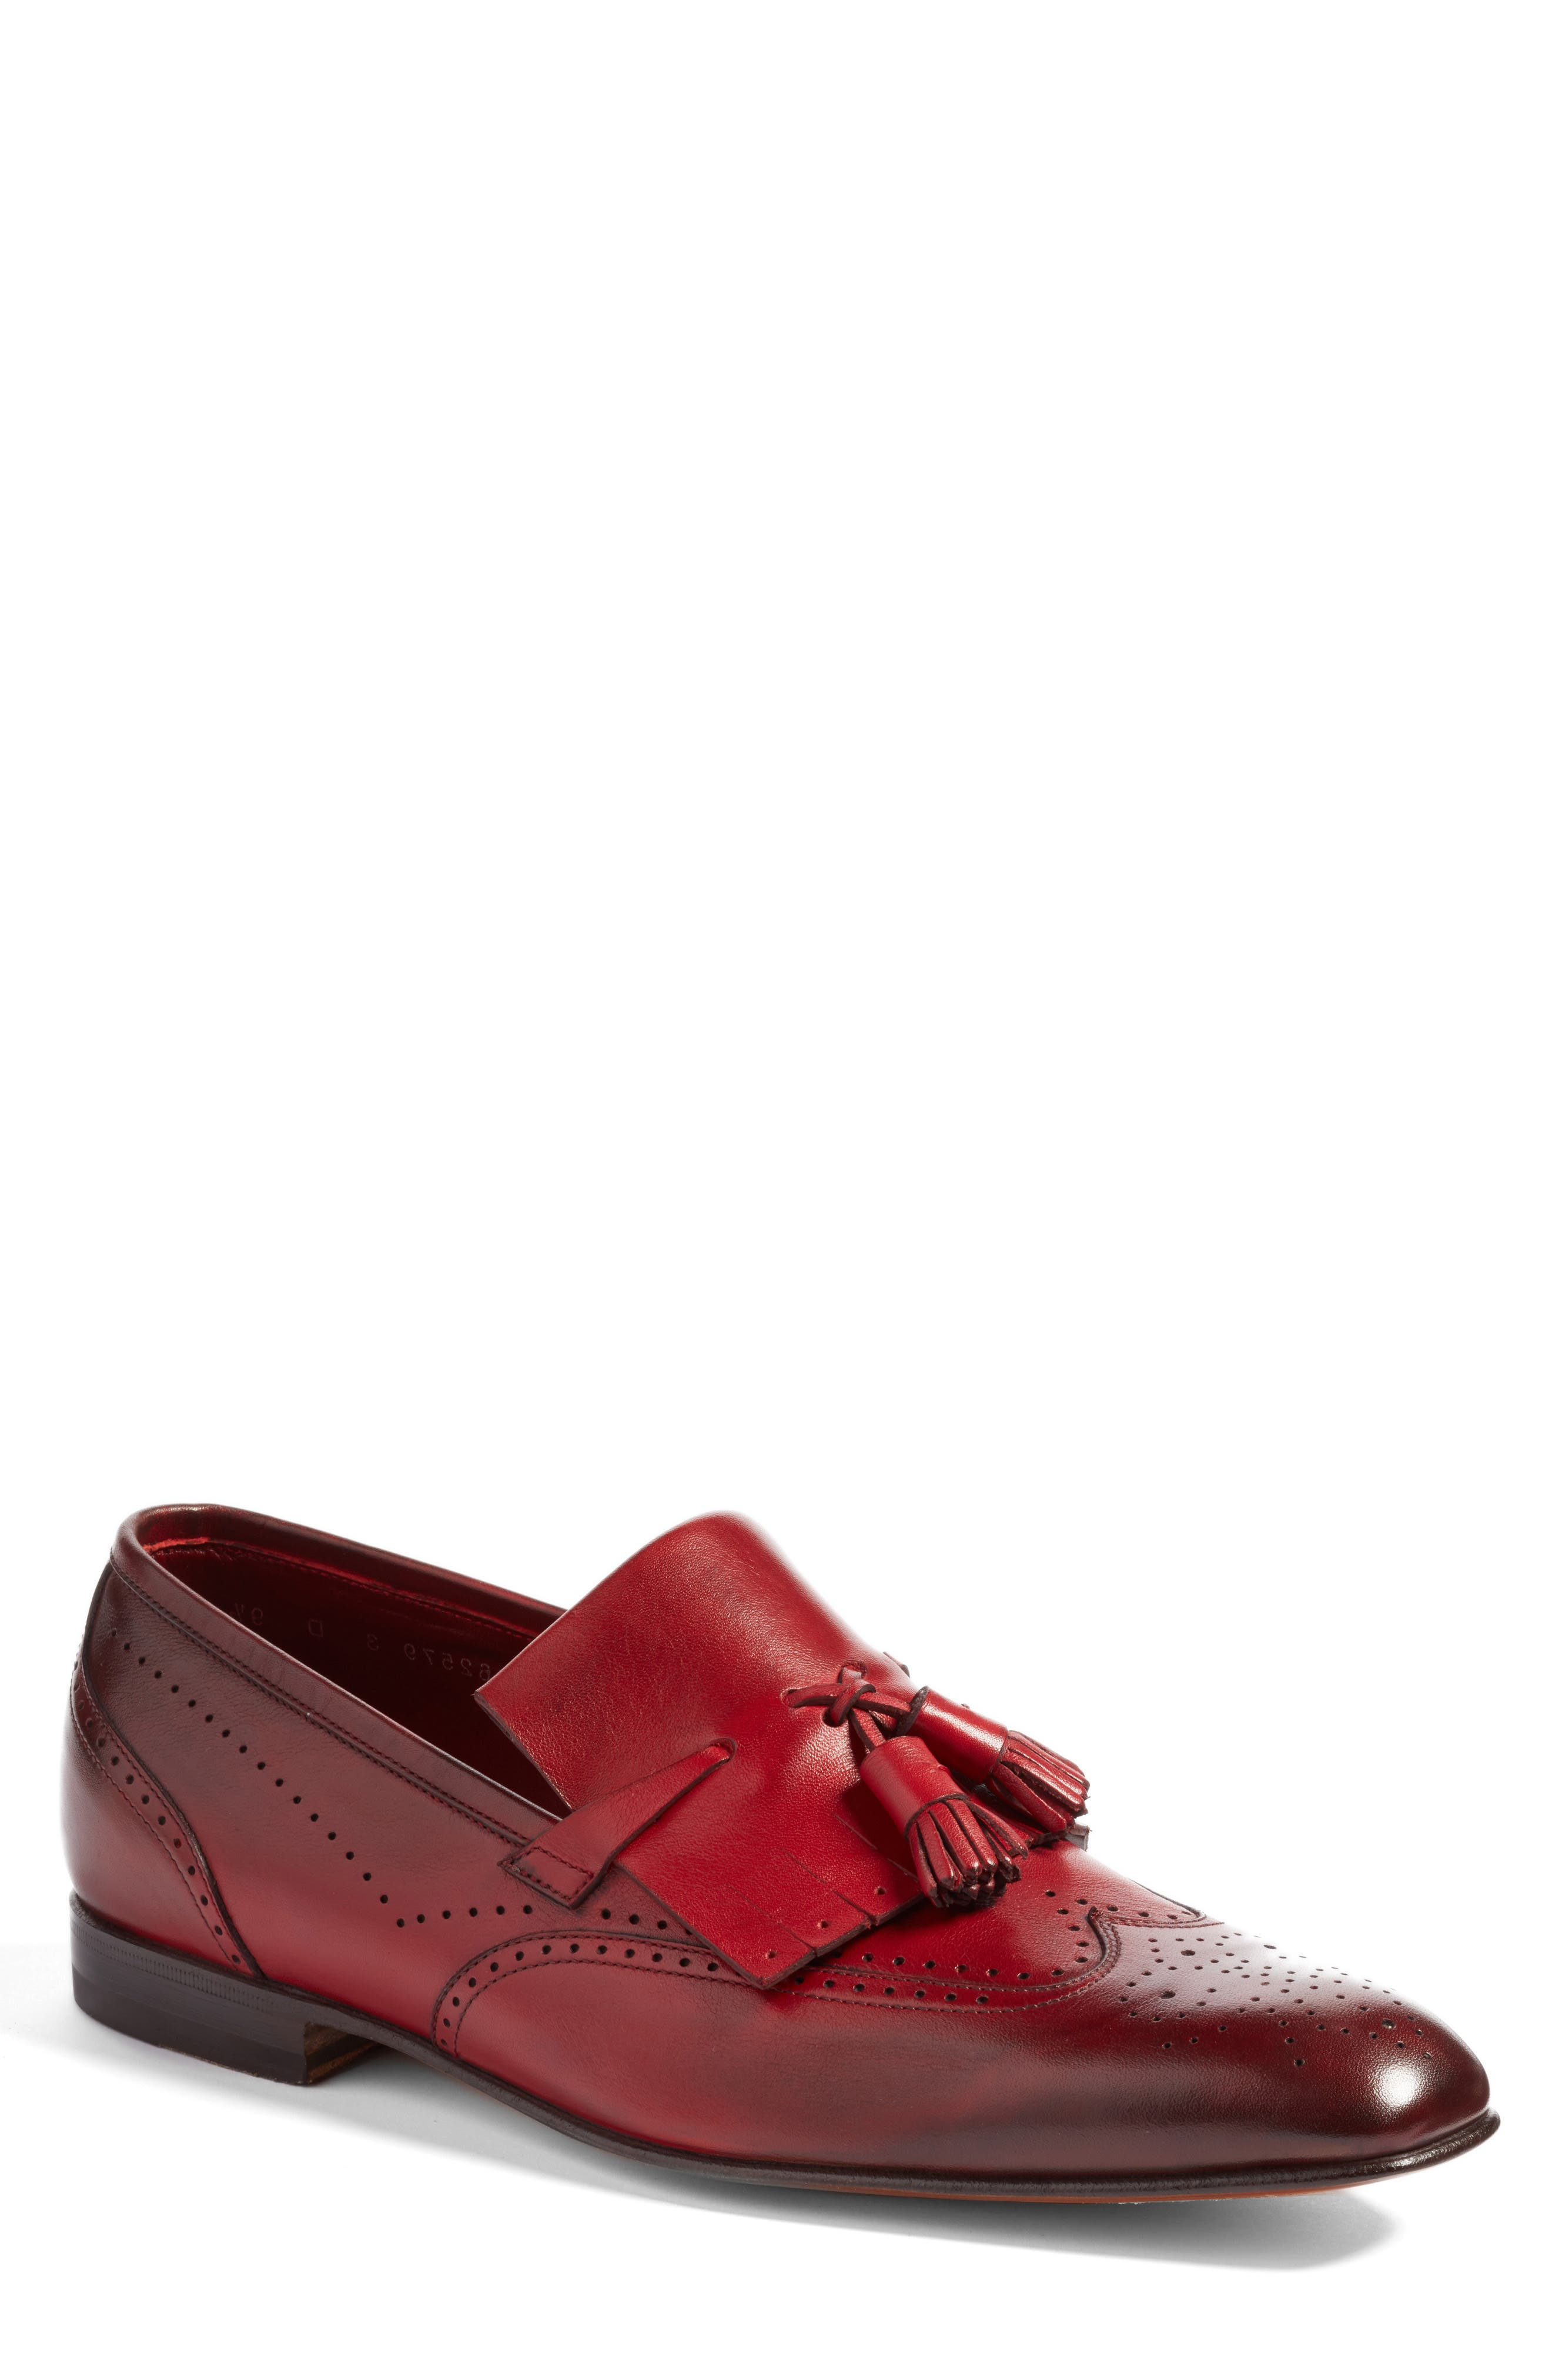 Floyd Tassel Wingtip Loafer,                             Main thumbnail 1, color,                             Burgundy Leather